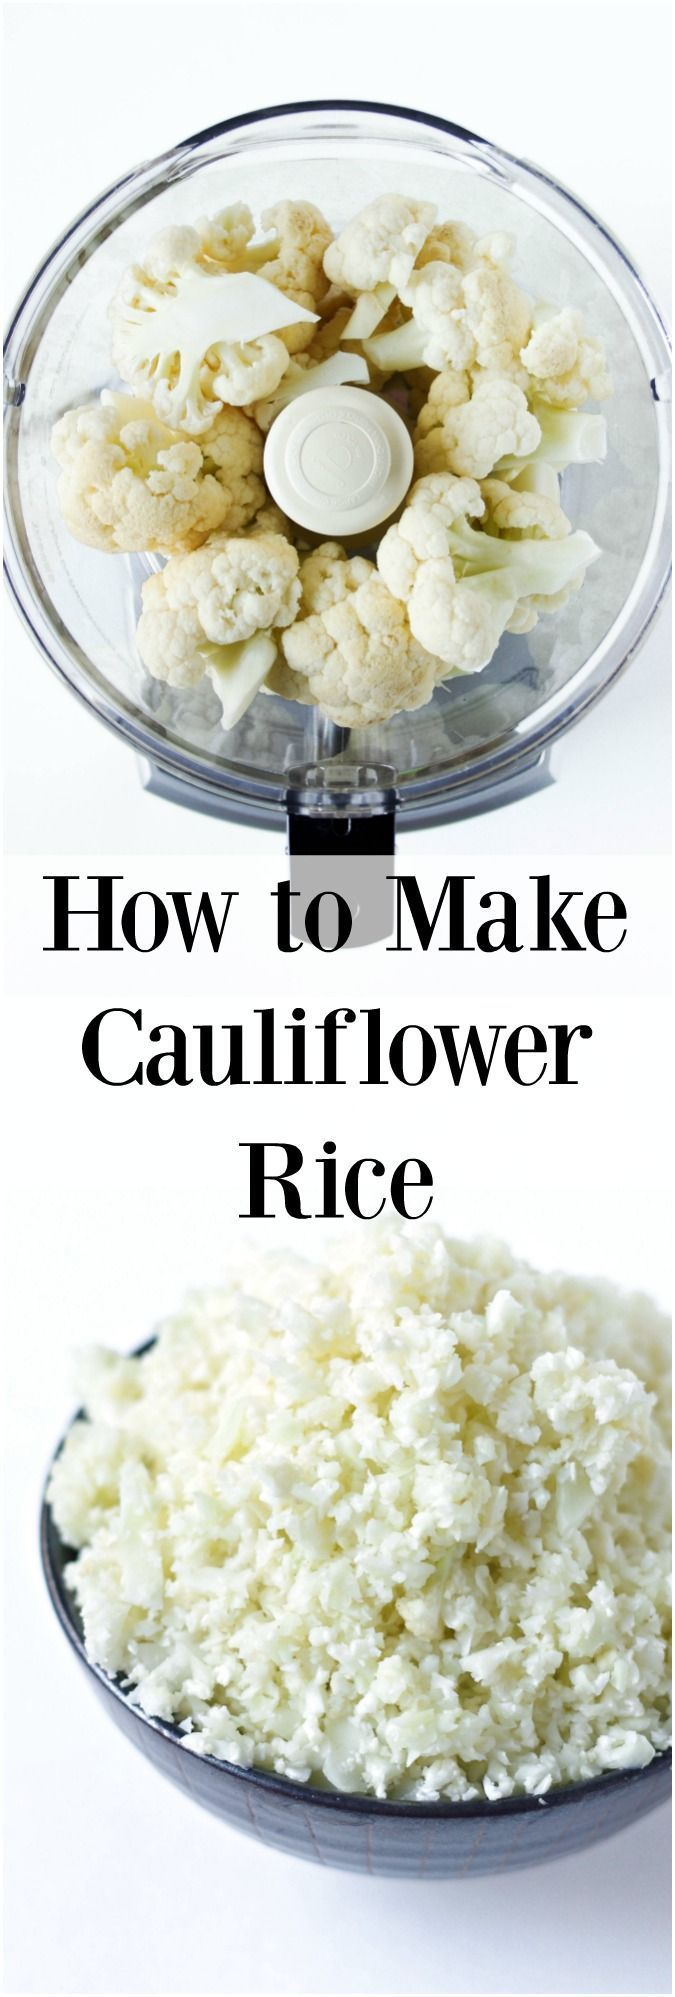 How to make and cook cauliflower rice. All you need is 10 minutes start to finish!